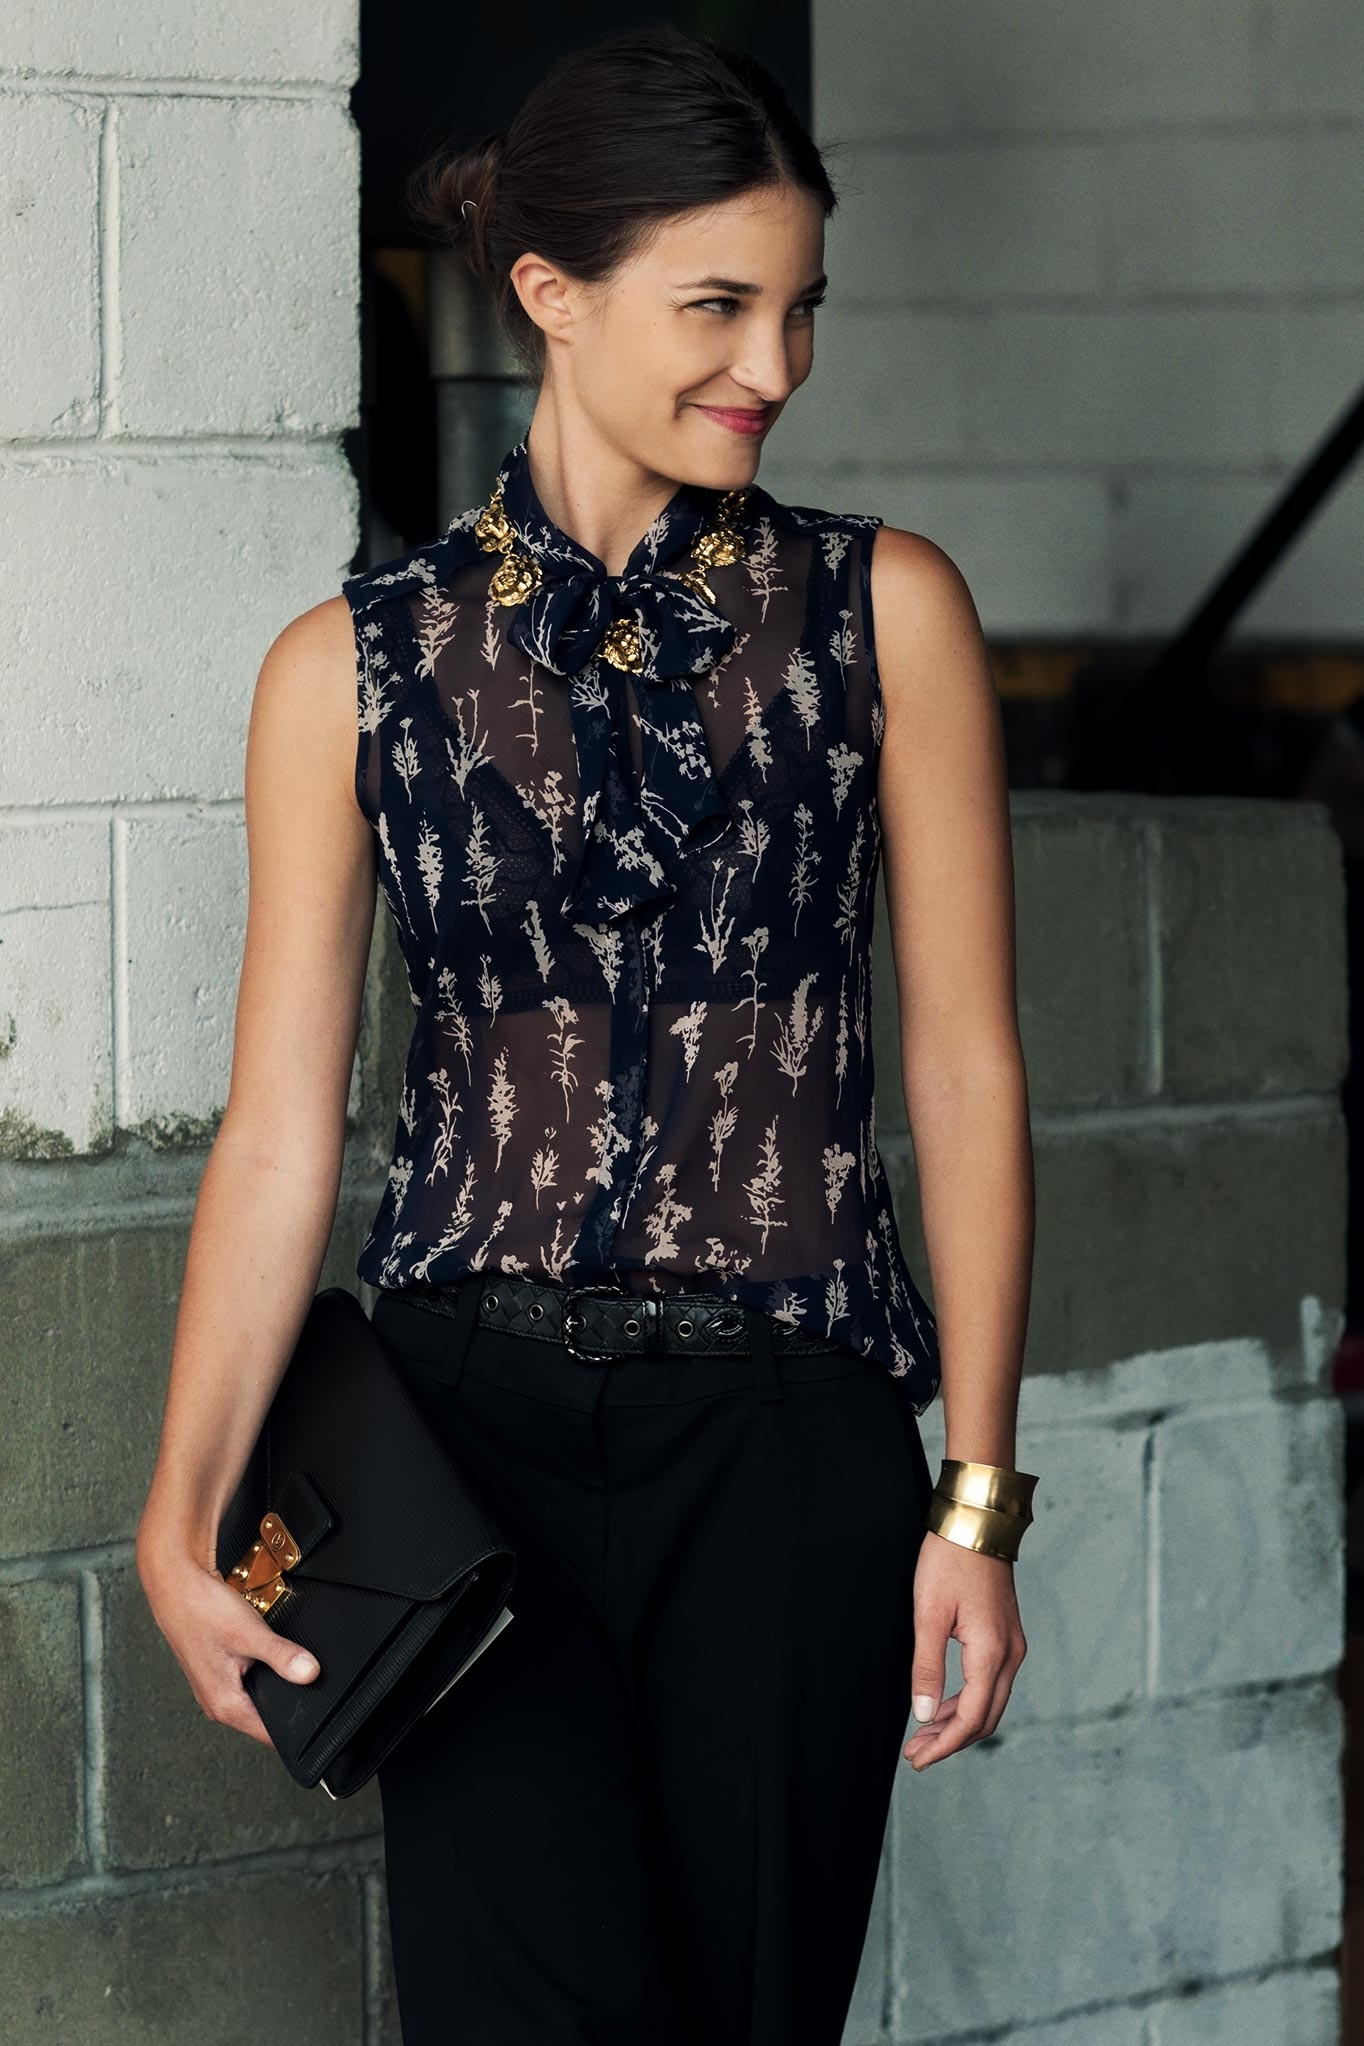 Maria Dueñas Jacobs at New York Fashion Week Spring/Summer 2012